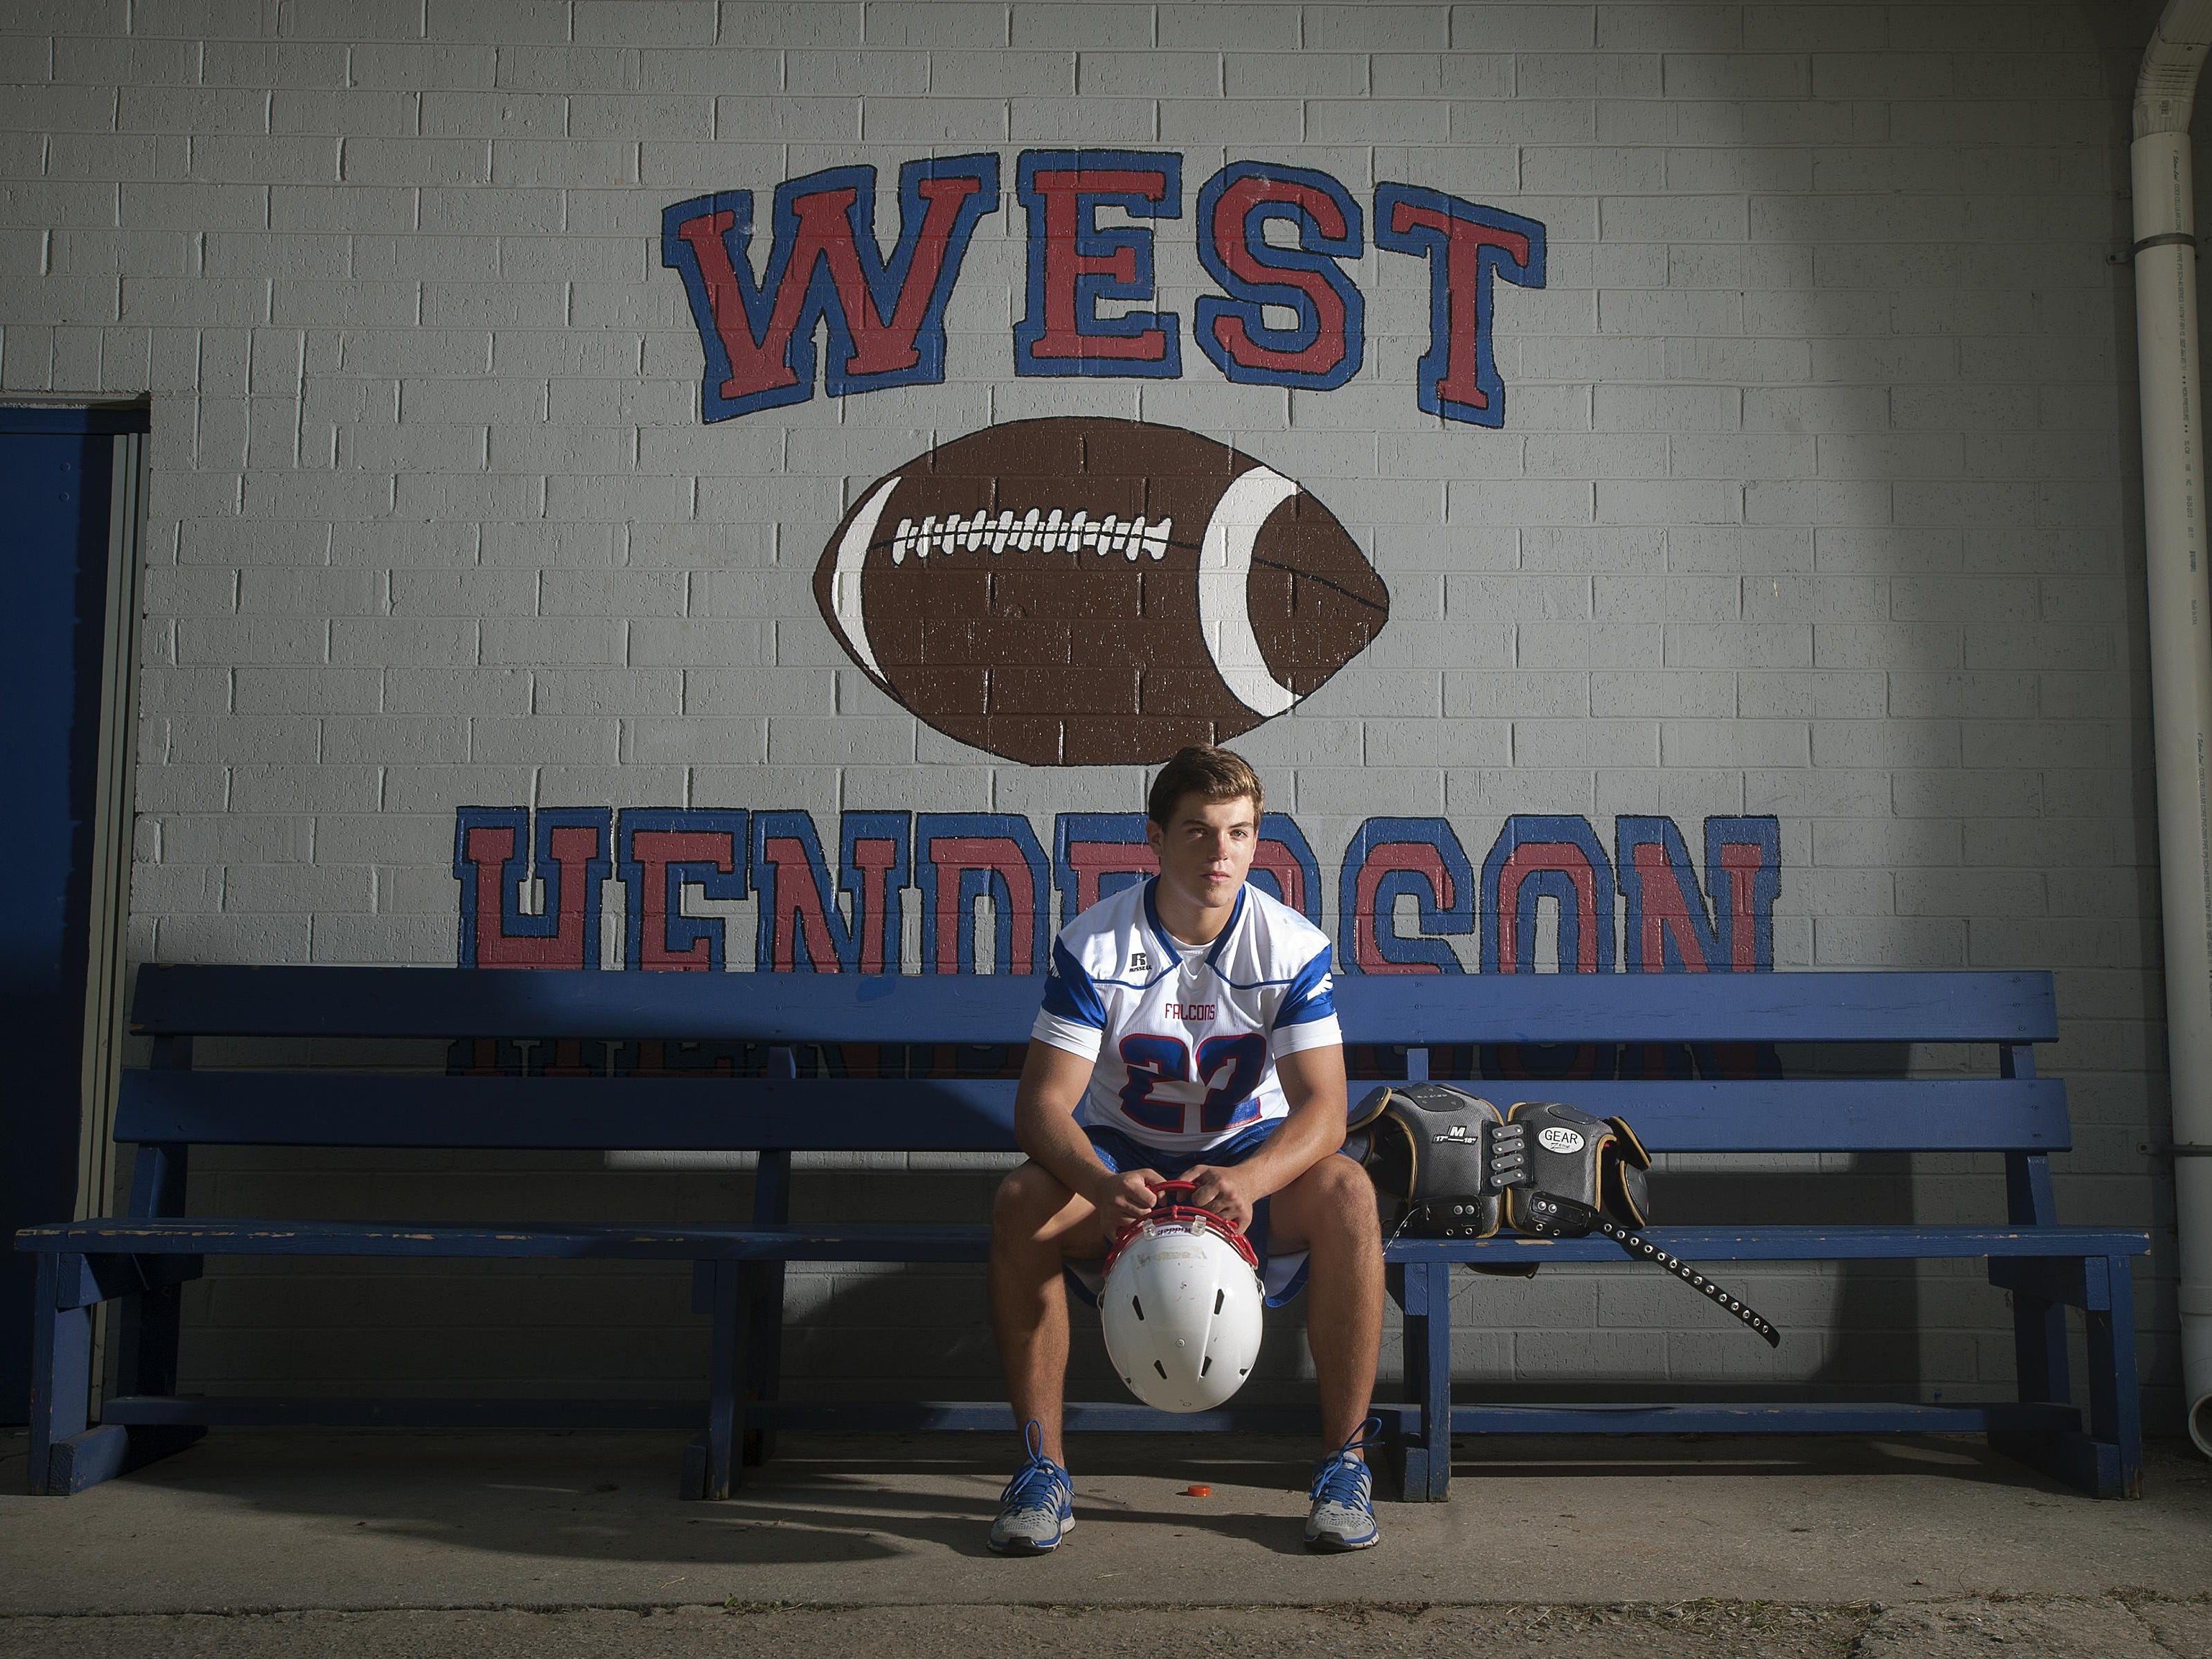 West Henderson's Stephen Perron is a returning senior linebacker for the Falcons this season. He made 133 tackles last season.